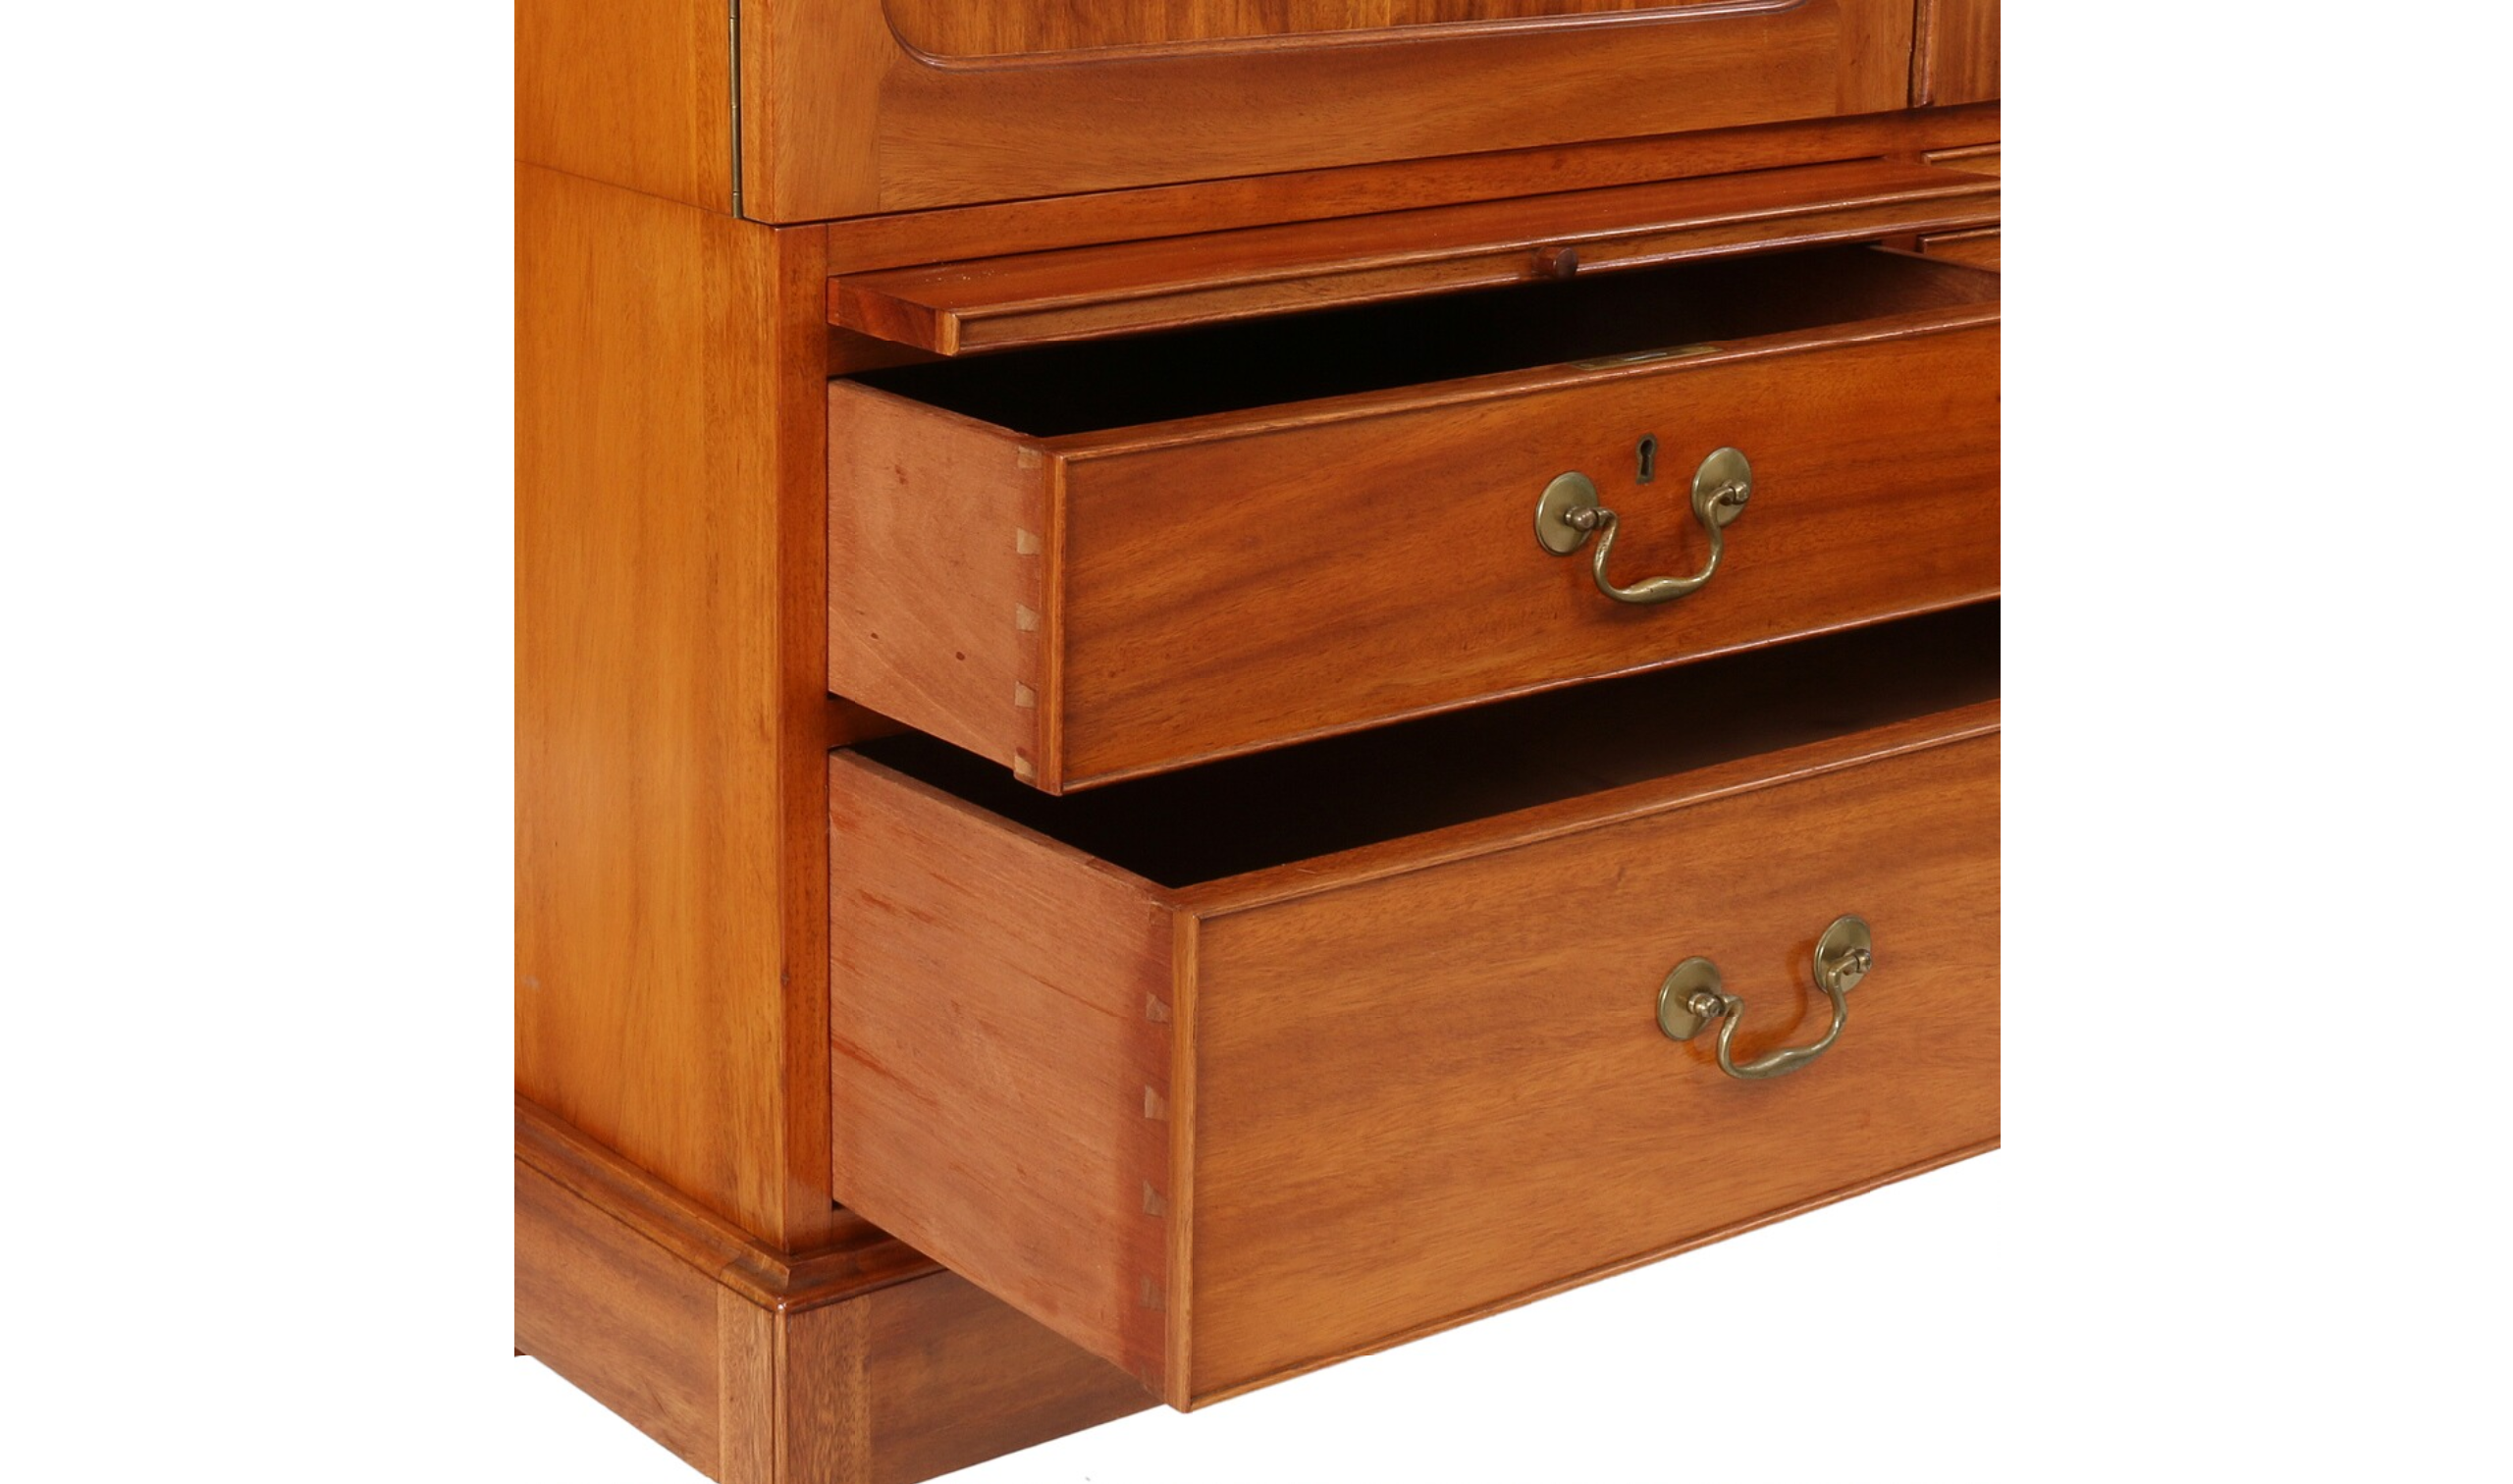 Rud Rasmussen Kaare Klint Cuban For Rud Rasmussen Mahogany Cabinet For Sale    Image 4 Of